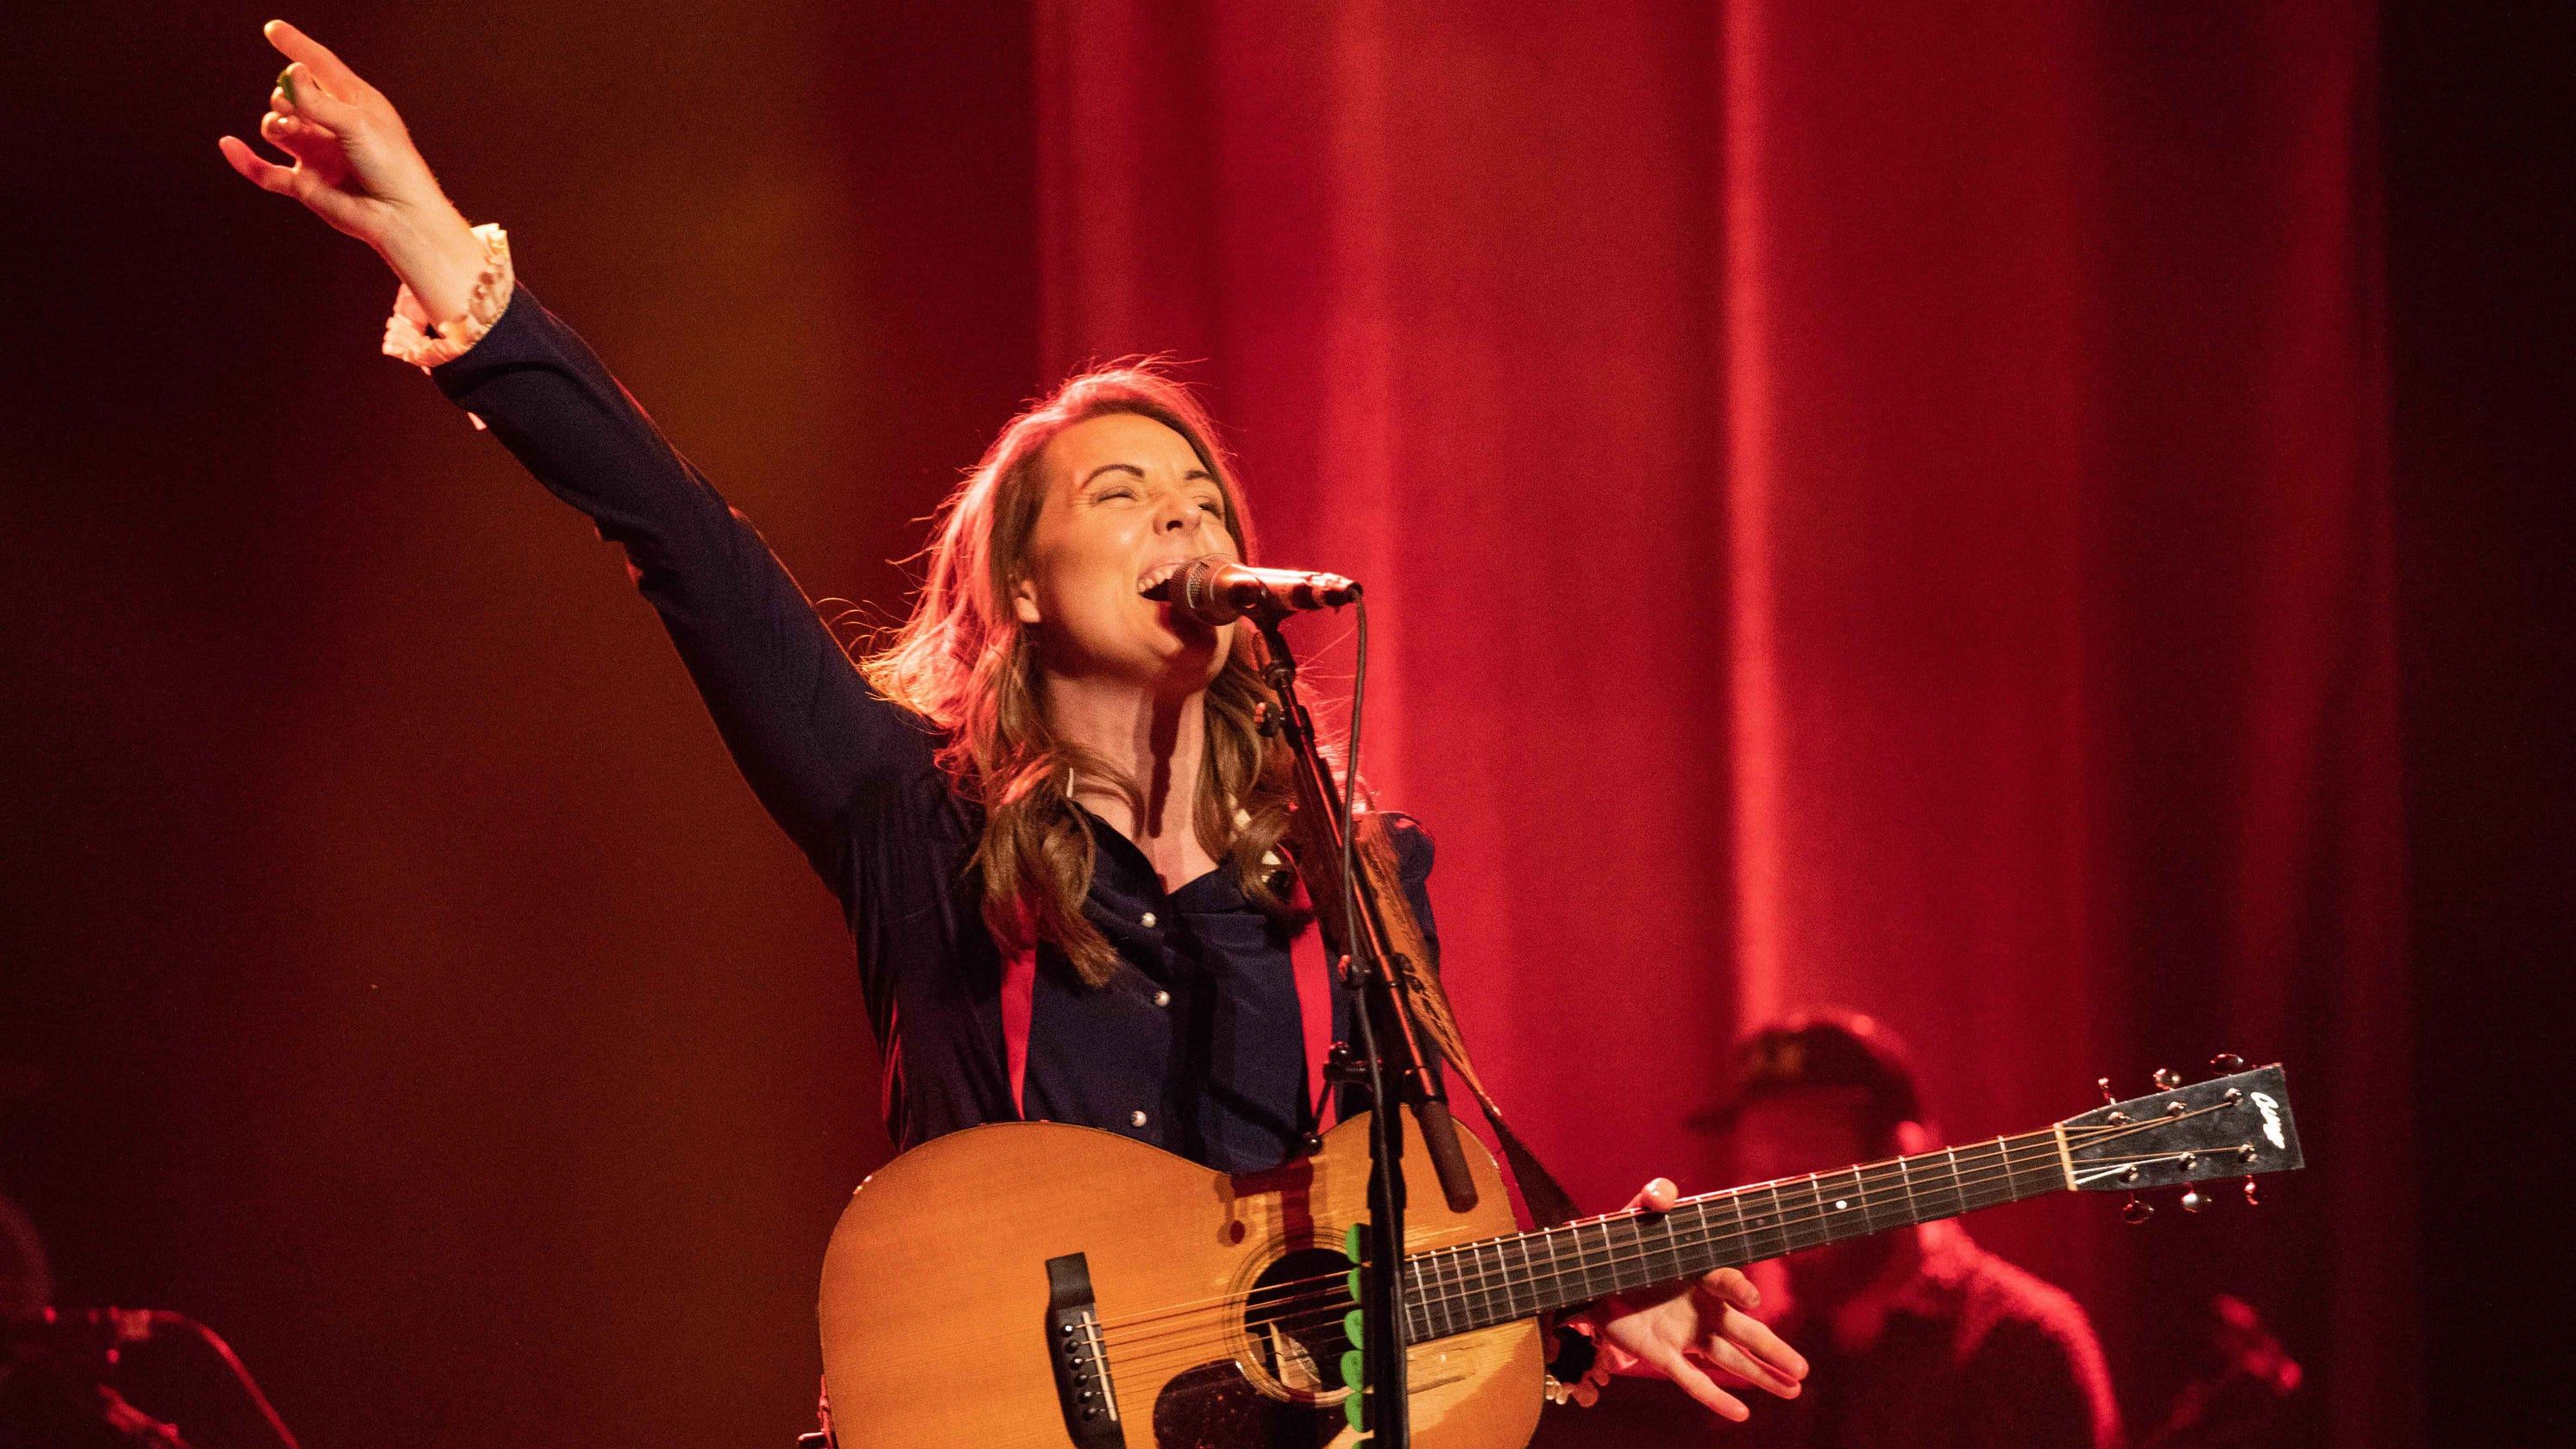 Vermont outdoor summer concerts: From Brandi Carlile to